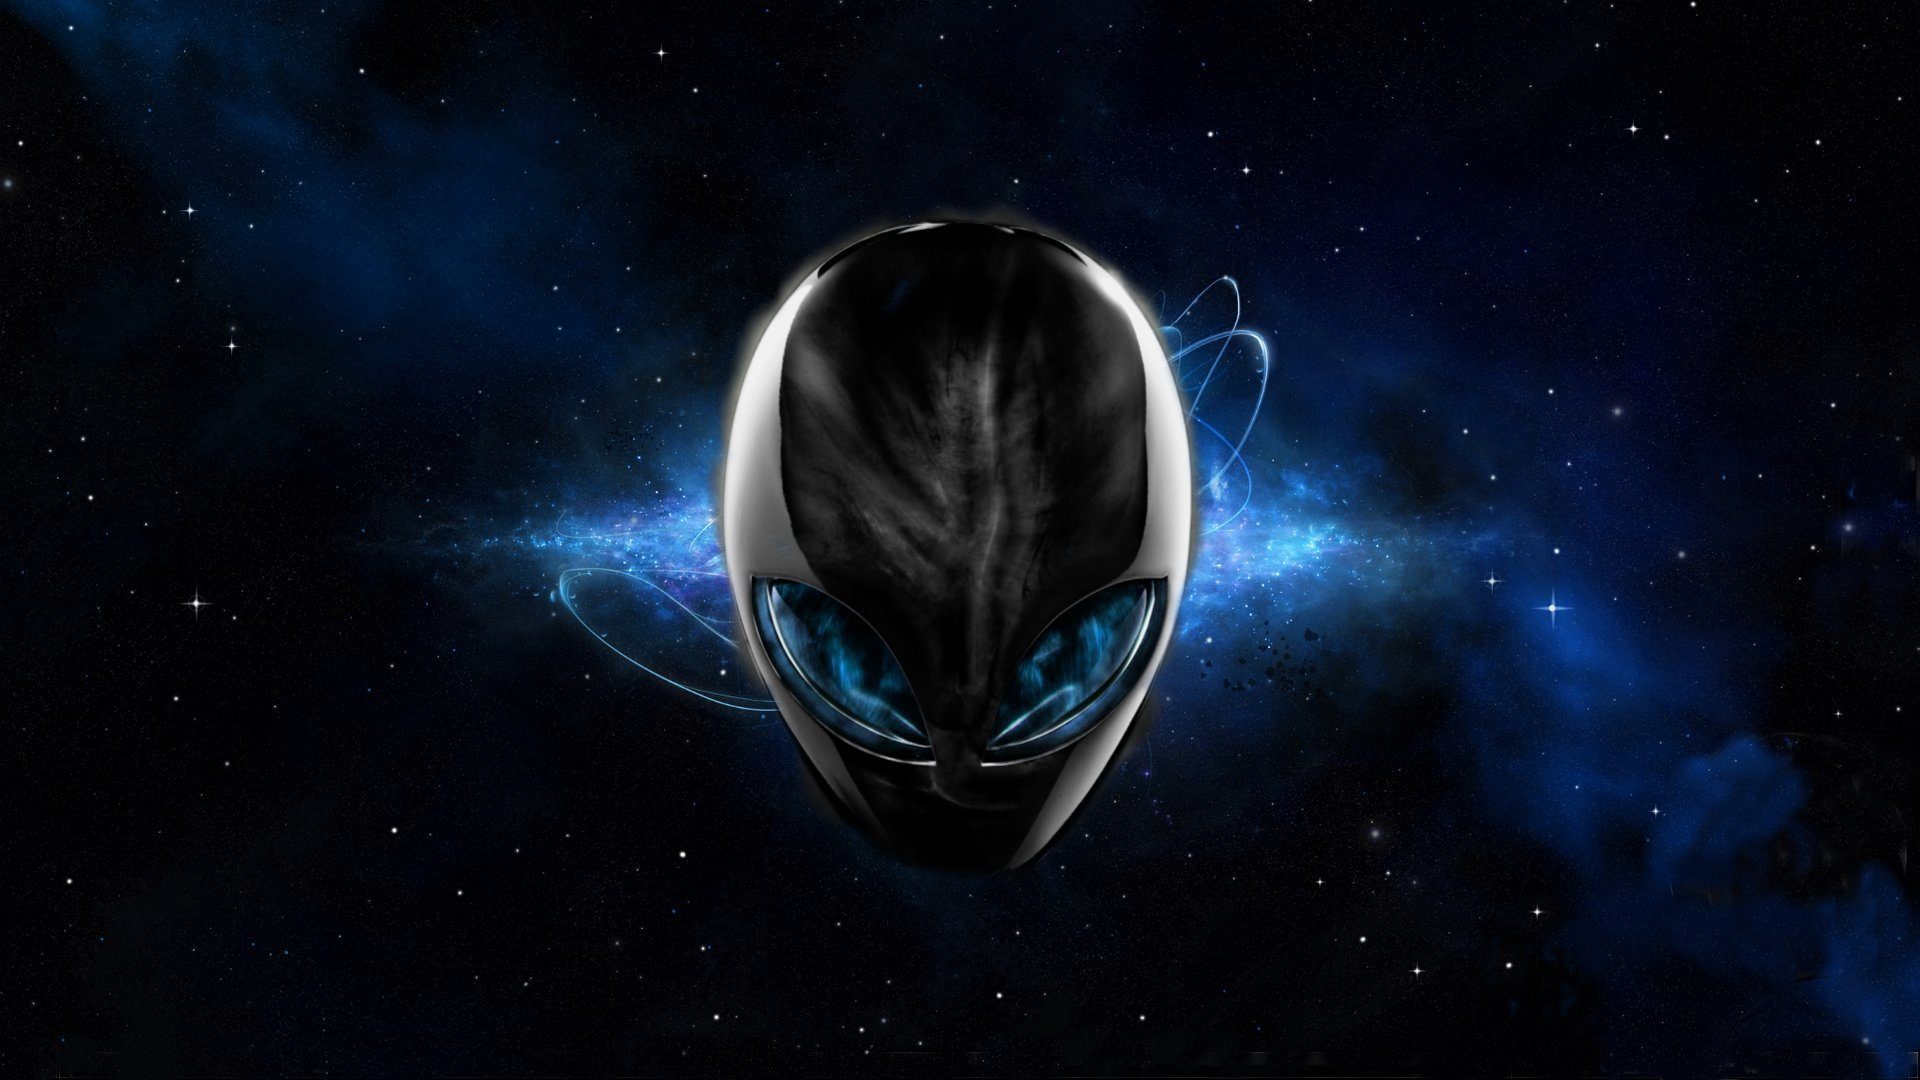 alienware wallpaper design ideas